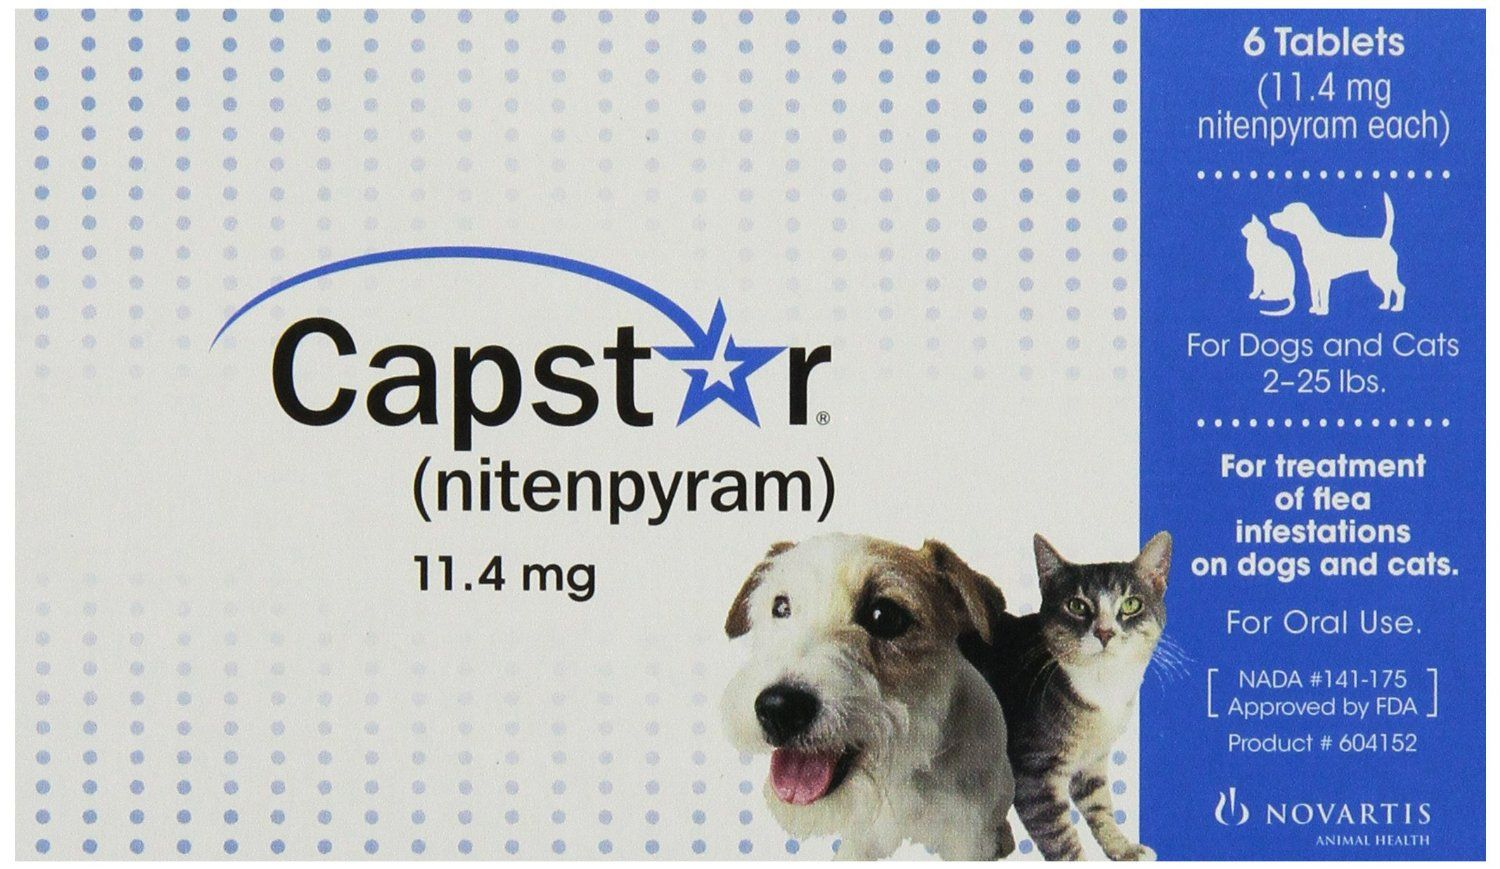 Capstar Flea Tablets for Dogs and Cats, 6